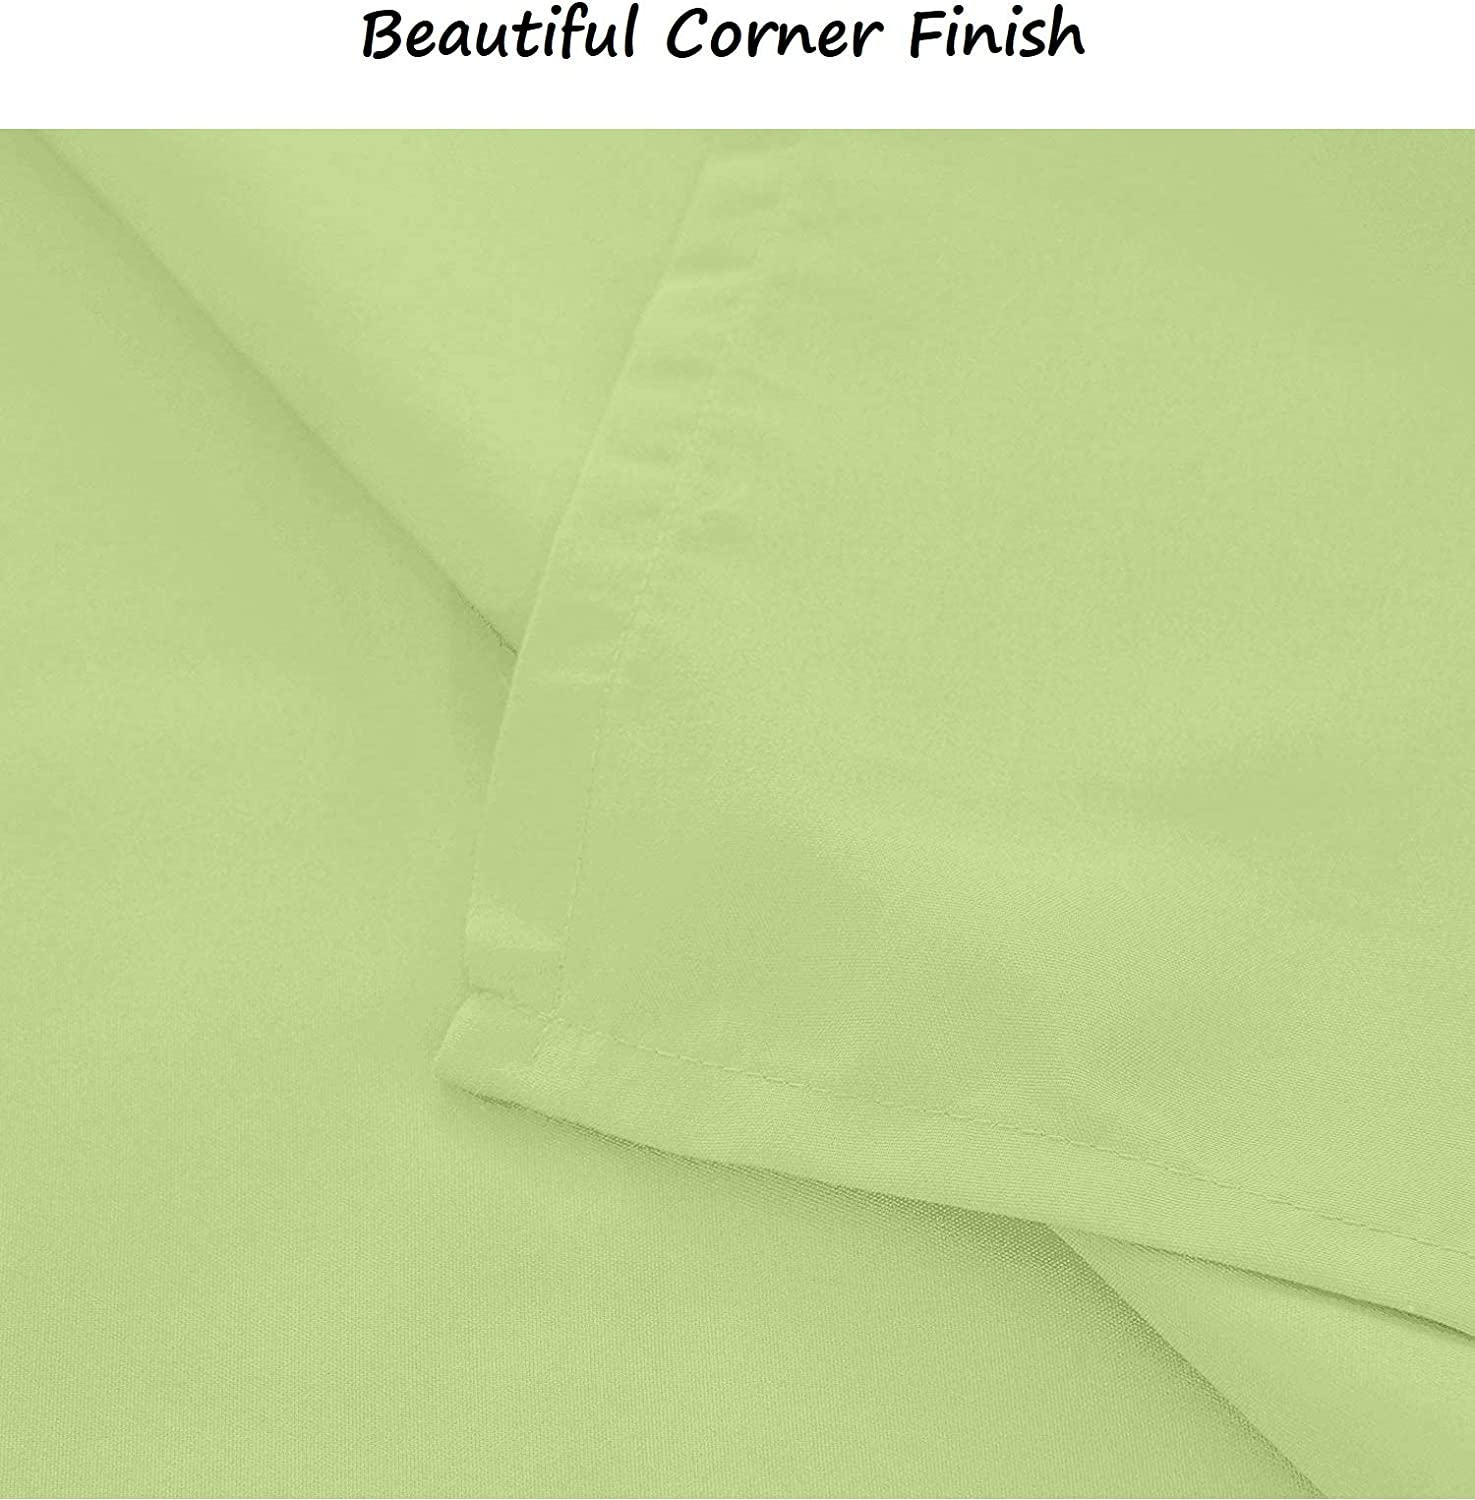 100/% Cotton Material Sage Solid Color Thread Soft and Durable Top Sheets for Your Bed King Size 400 Count Flat Sheet Only